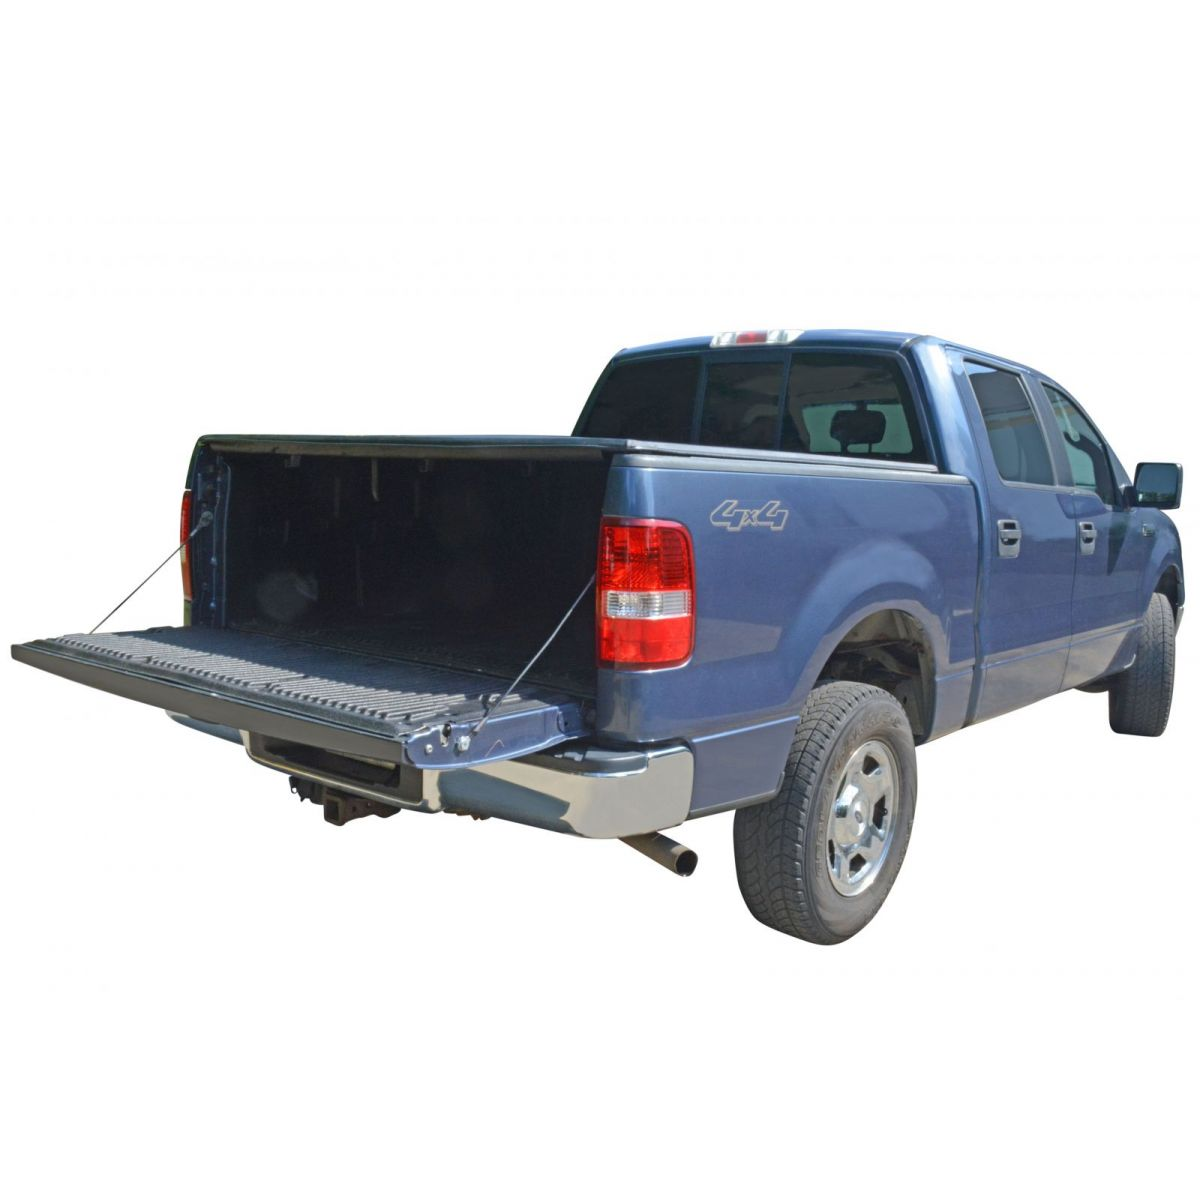 Tonneau Cover Lock Roll For Ford F250 F350 Super Duty Pickup Truck 6 5ft Bed Hd Bau Co At